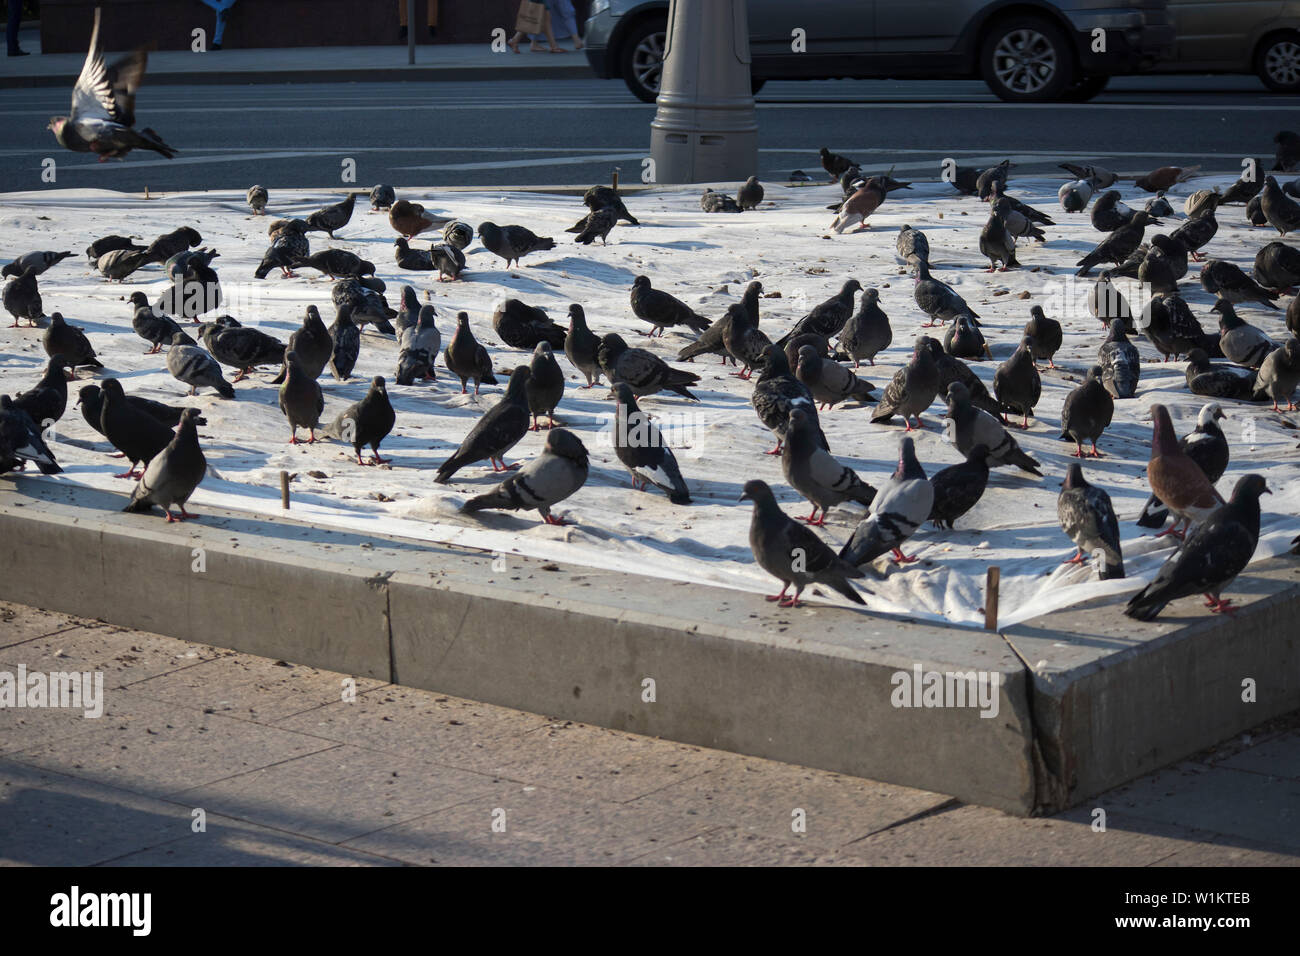 Flock of pigeon on the side walk at the. Blurred group of pigeons fight over for food, many struggle pigeons near temple in State Mosque, Kota Kinabal - Stock Image